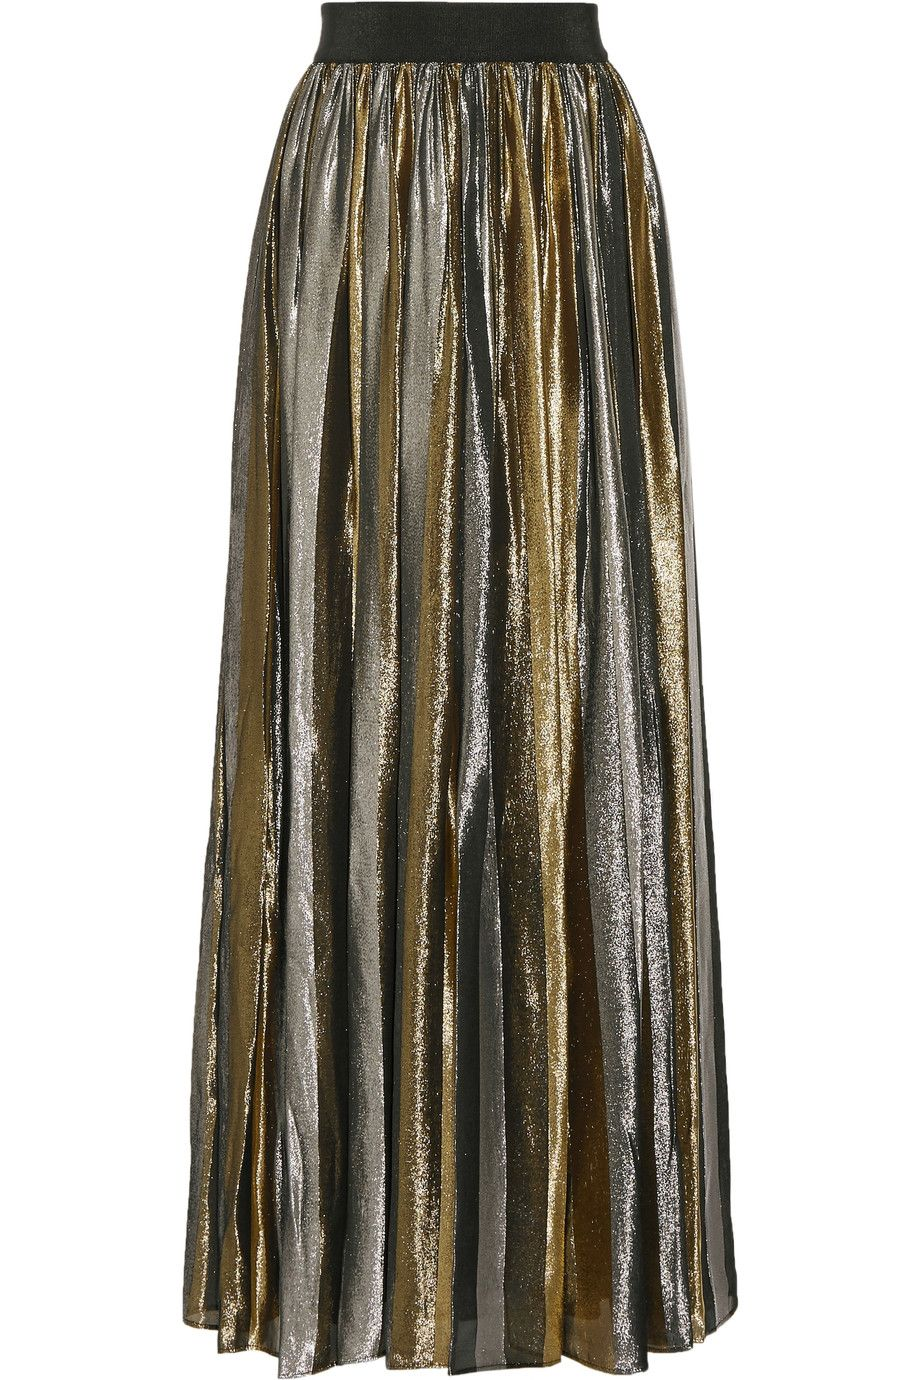 Alice+Olivia Tabetha pleated skirt Really Cheap Shoes Online Best Place 2018 Unisex For Sale ktgStf